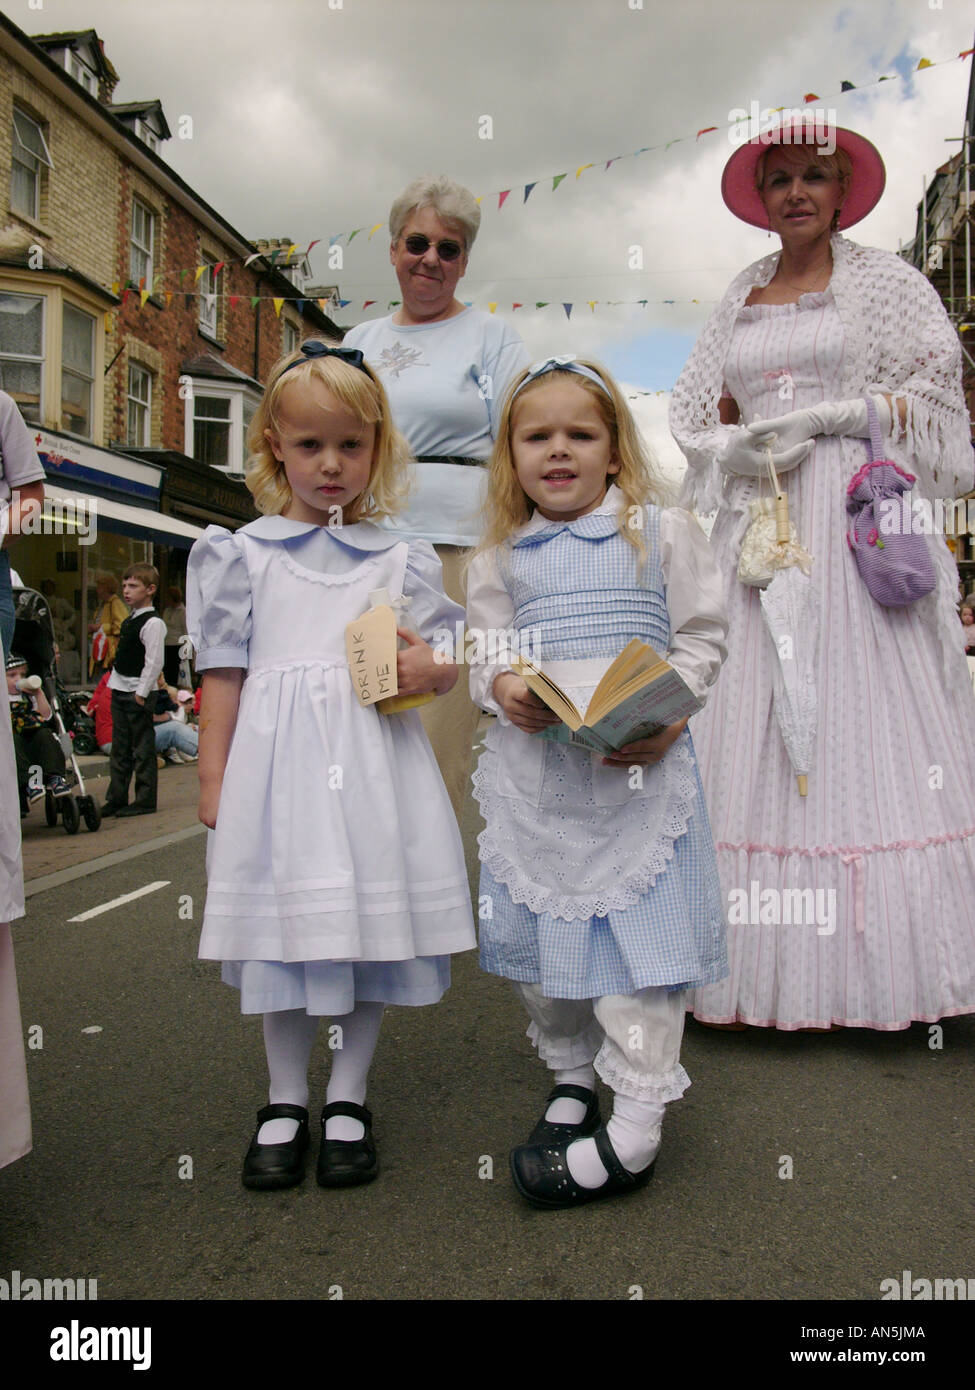 Llandrindod Wells victorian festival Powys Wales - girls dressed as characters from a Lewis Carol book Alice in Wonderland - Stock Image